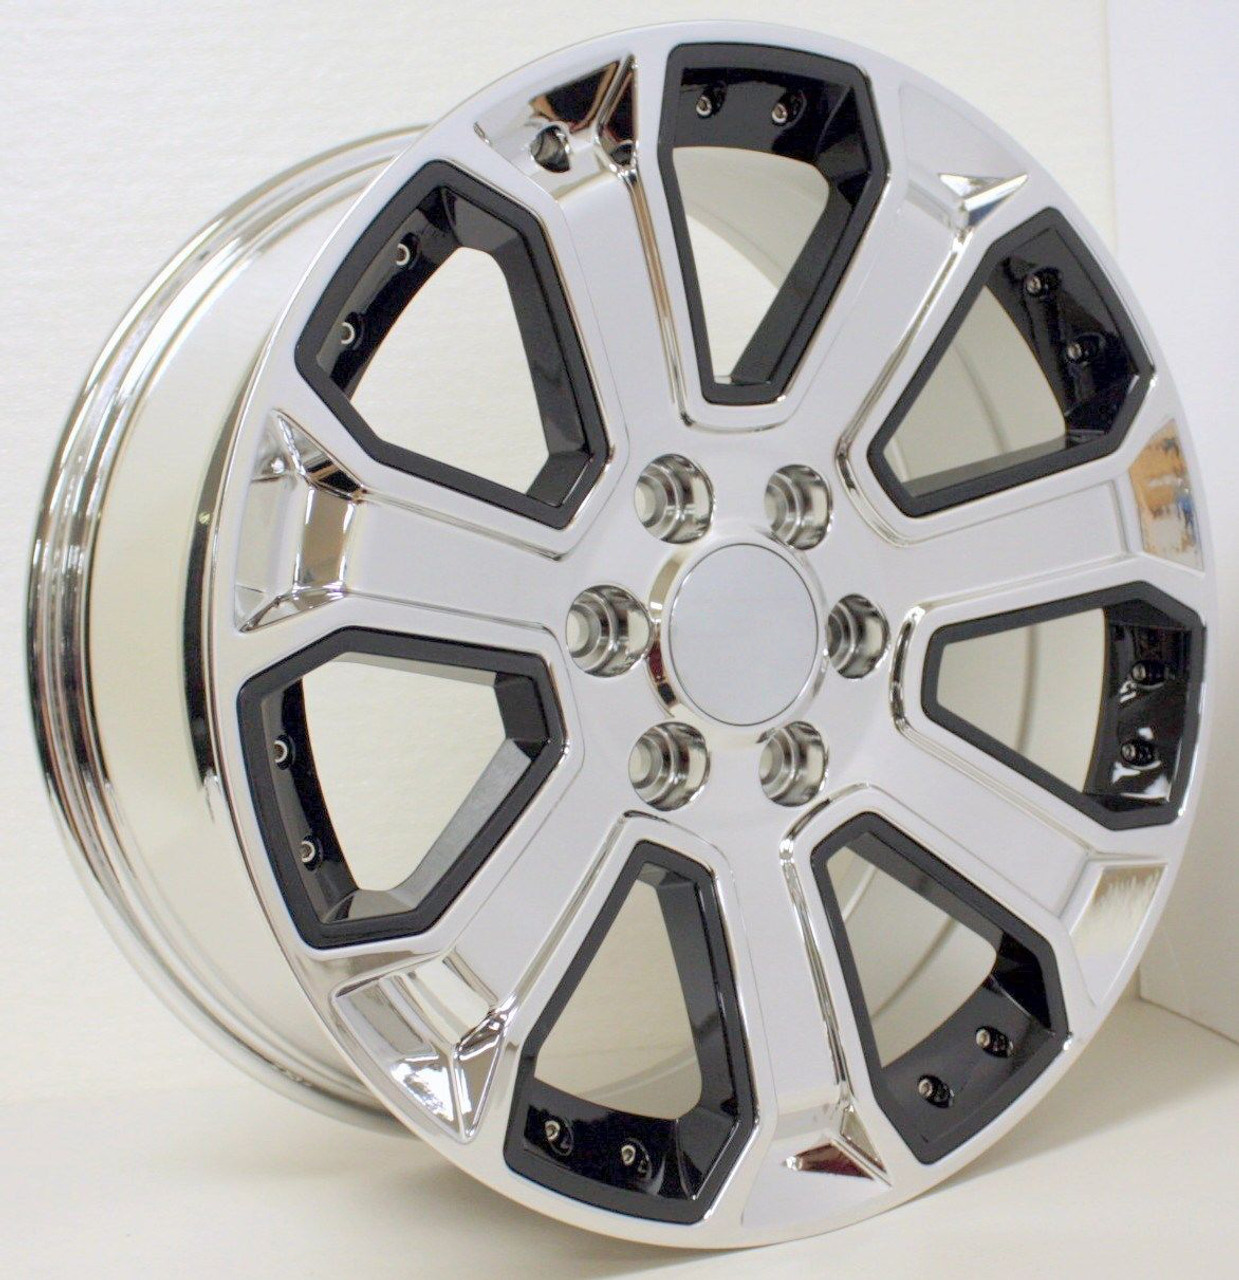 Gmc Chrome With Black Inserts 22 Inch Wheels Rims